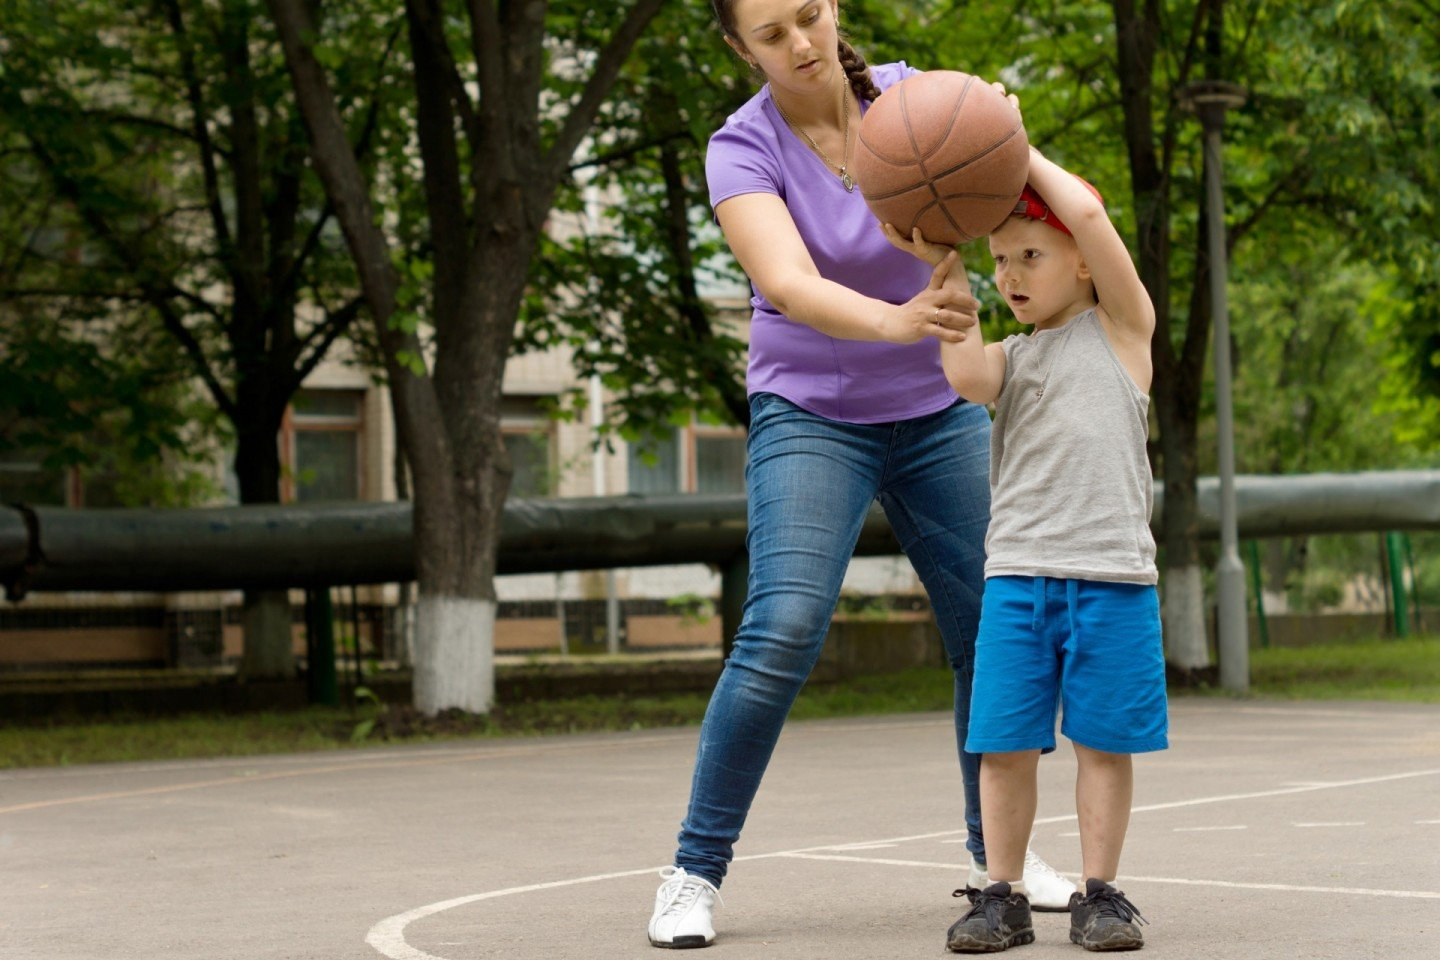 Modeling how to play basketball